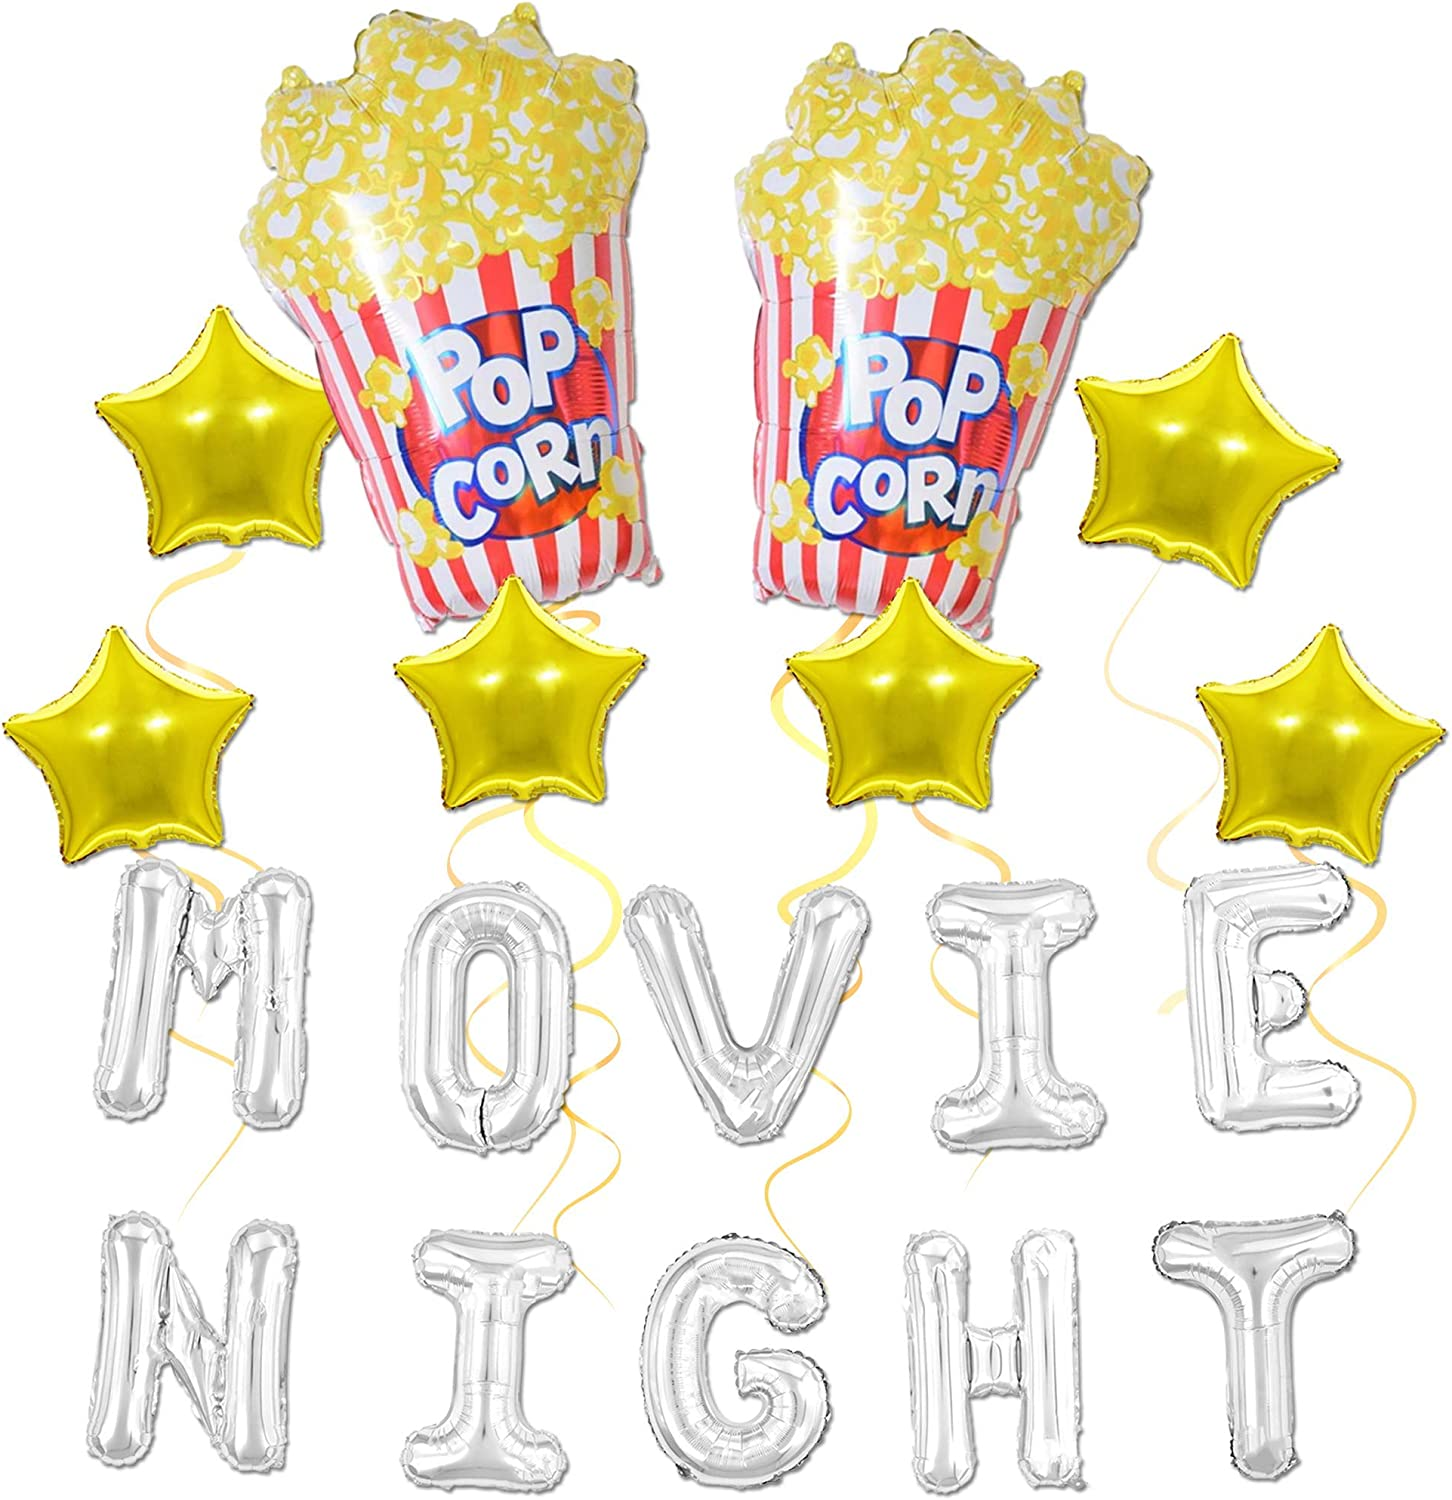 Movie Night Themed Party Decoration Balloons | Birthday Party Supplies for Hollywood or Movie Time Theme Event | Balloon Decor for IndoorOutdoor Backyard Movie Theater Party